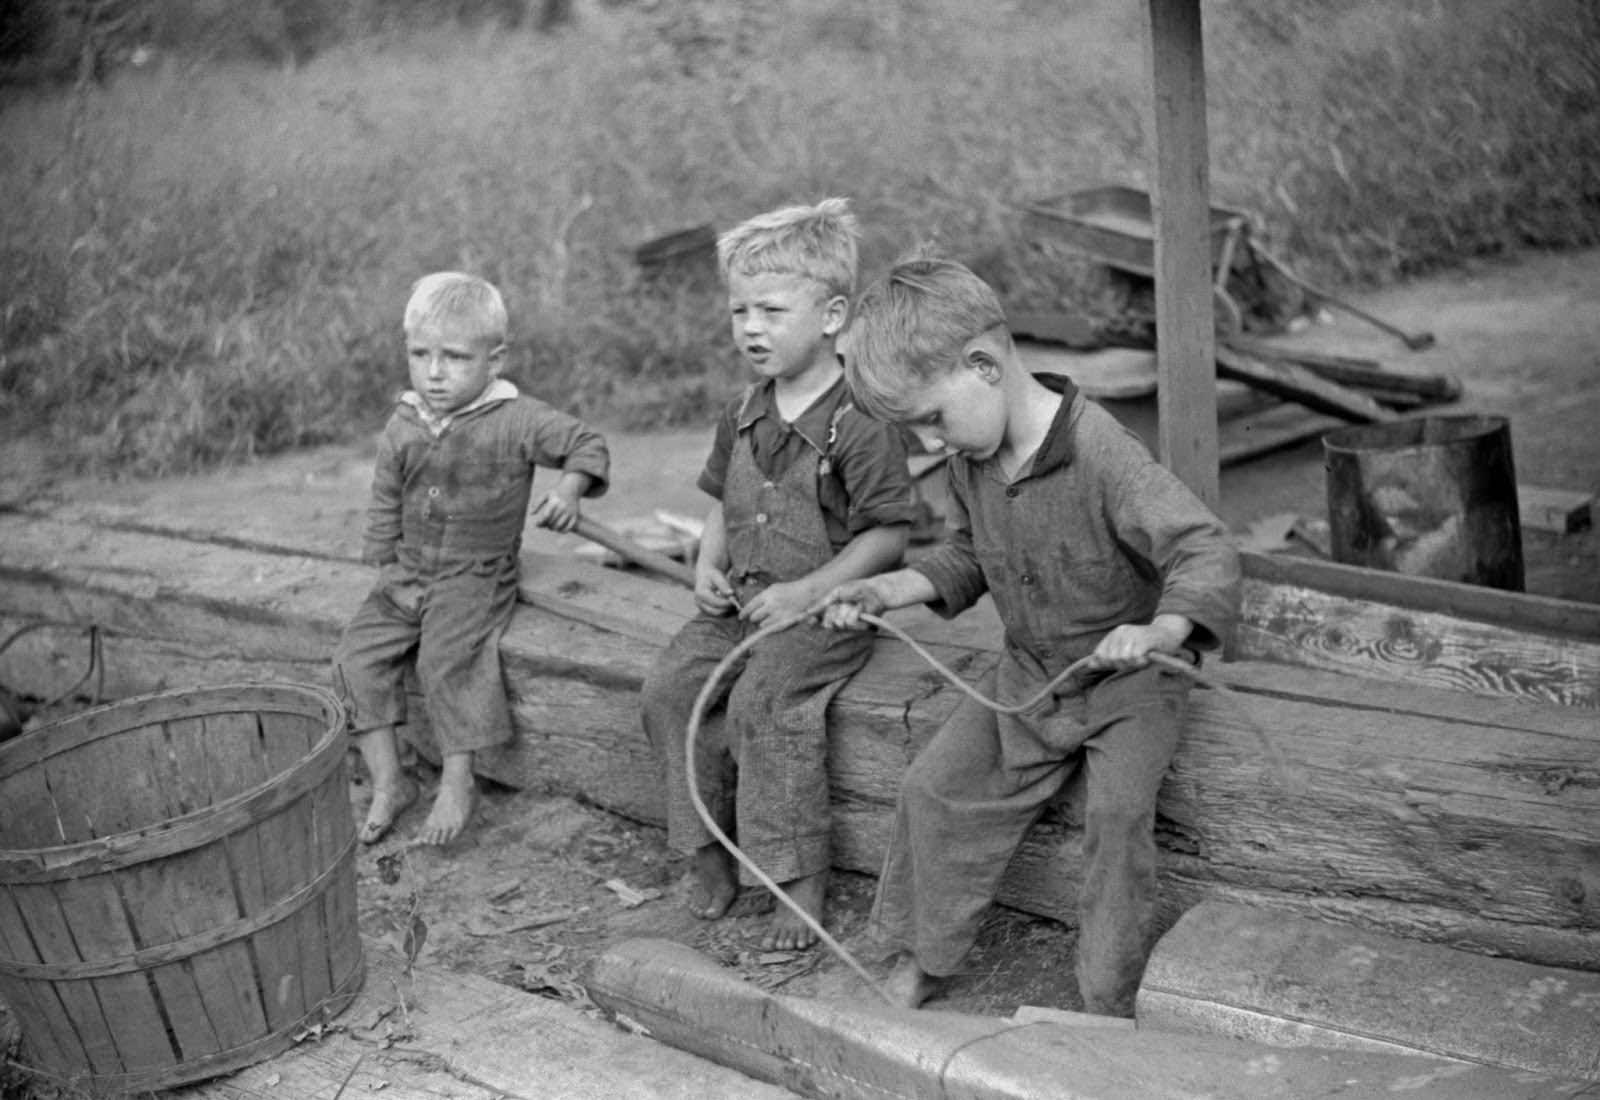 vintage everyday black and white photos of west virginia coal children of riverboat family